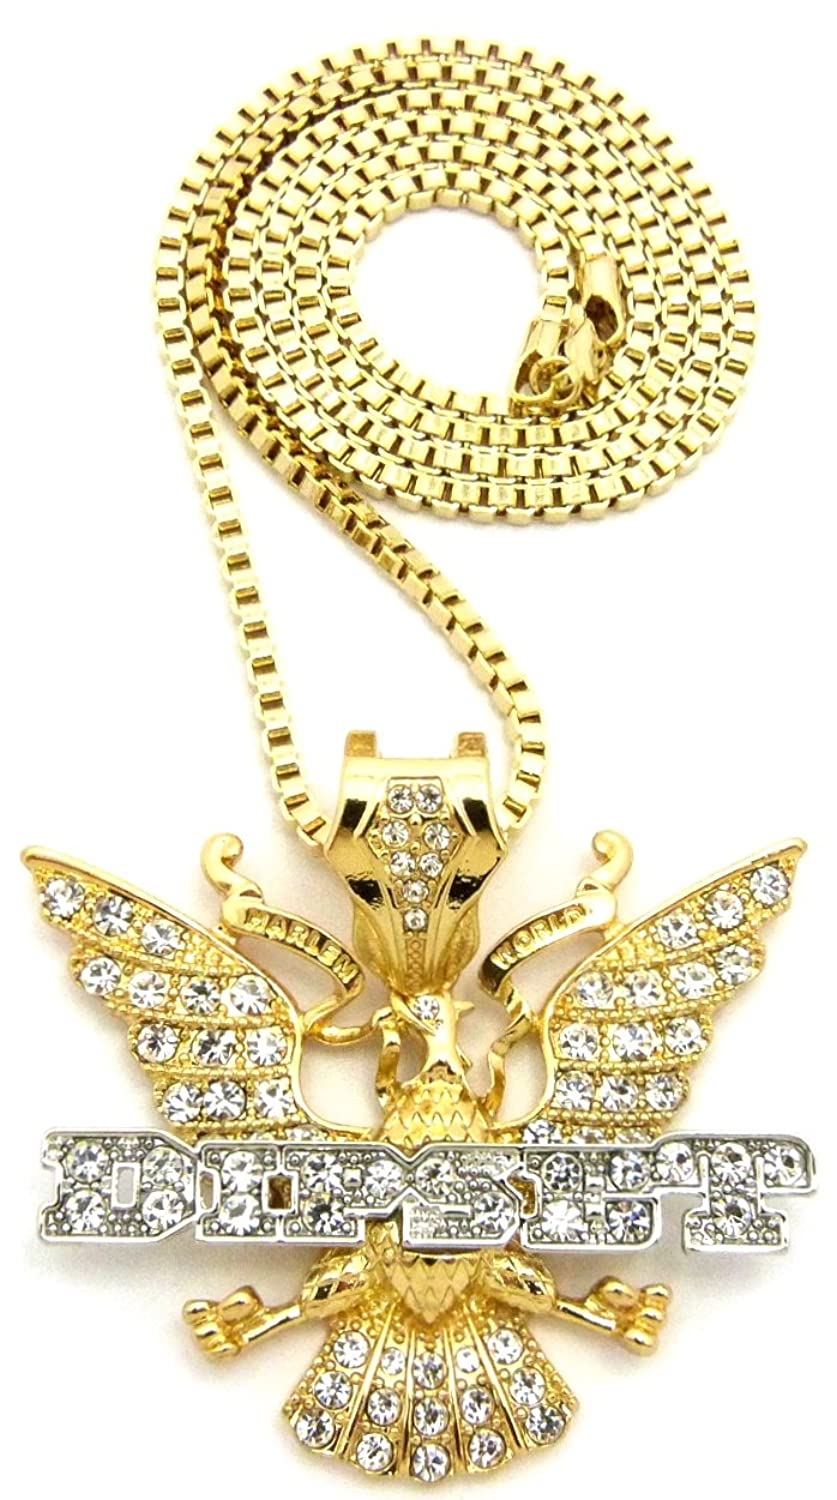 GWOOD Diplomats Dipset Iced Out 30 Inch Long Box Chain Pendant Necklace